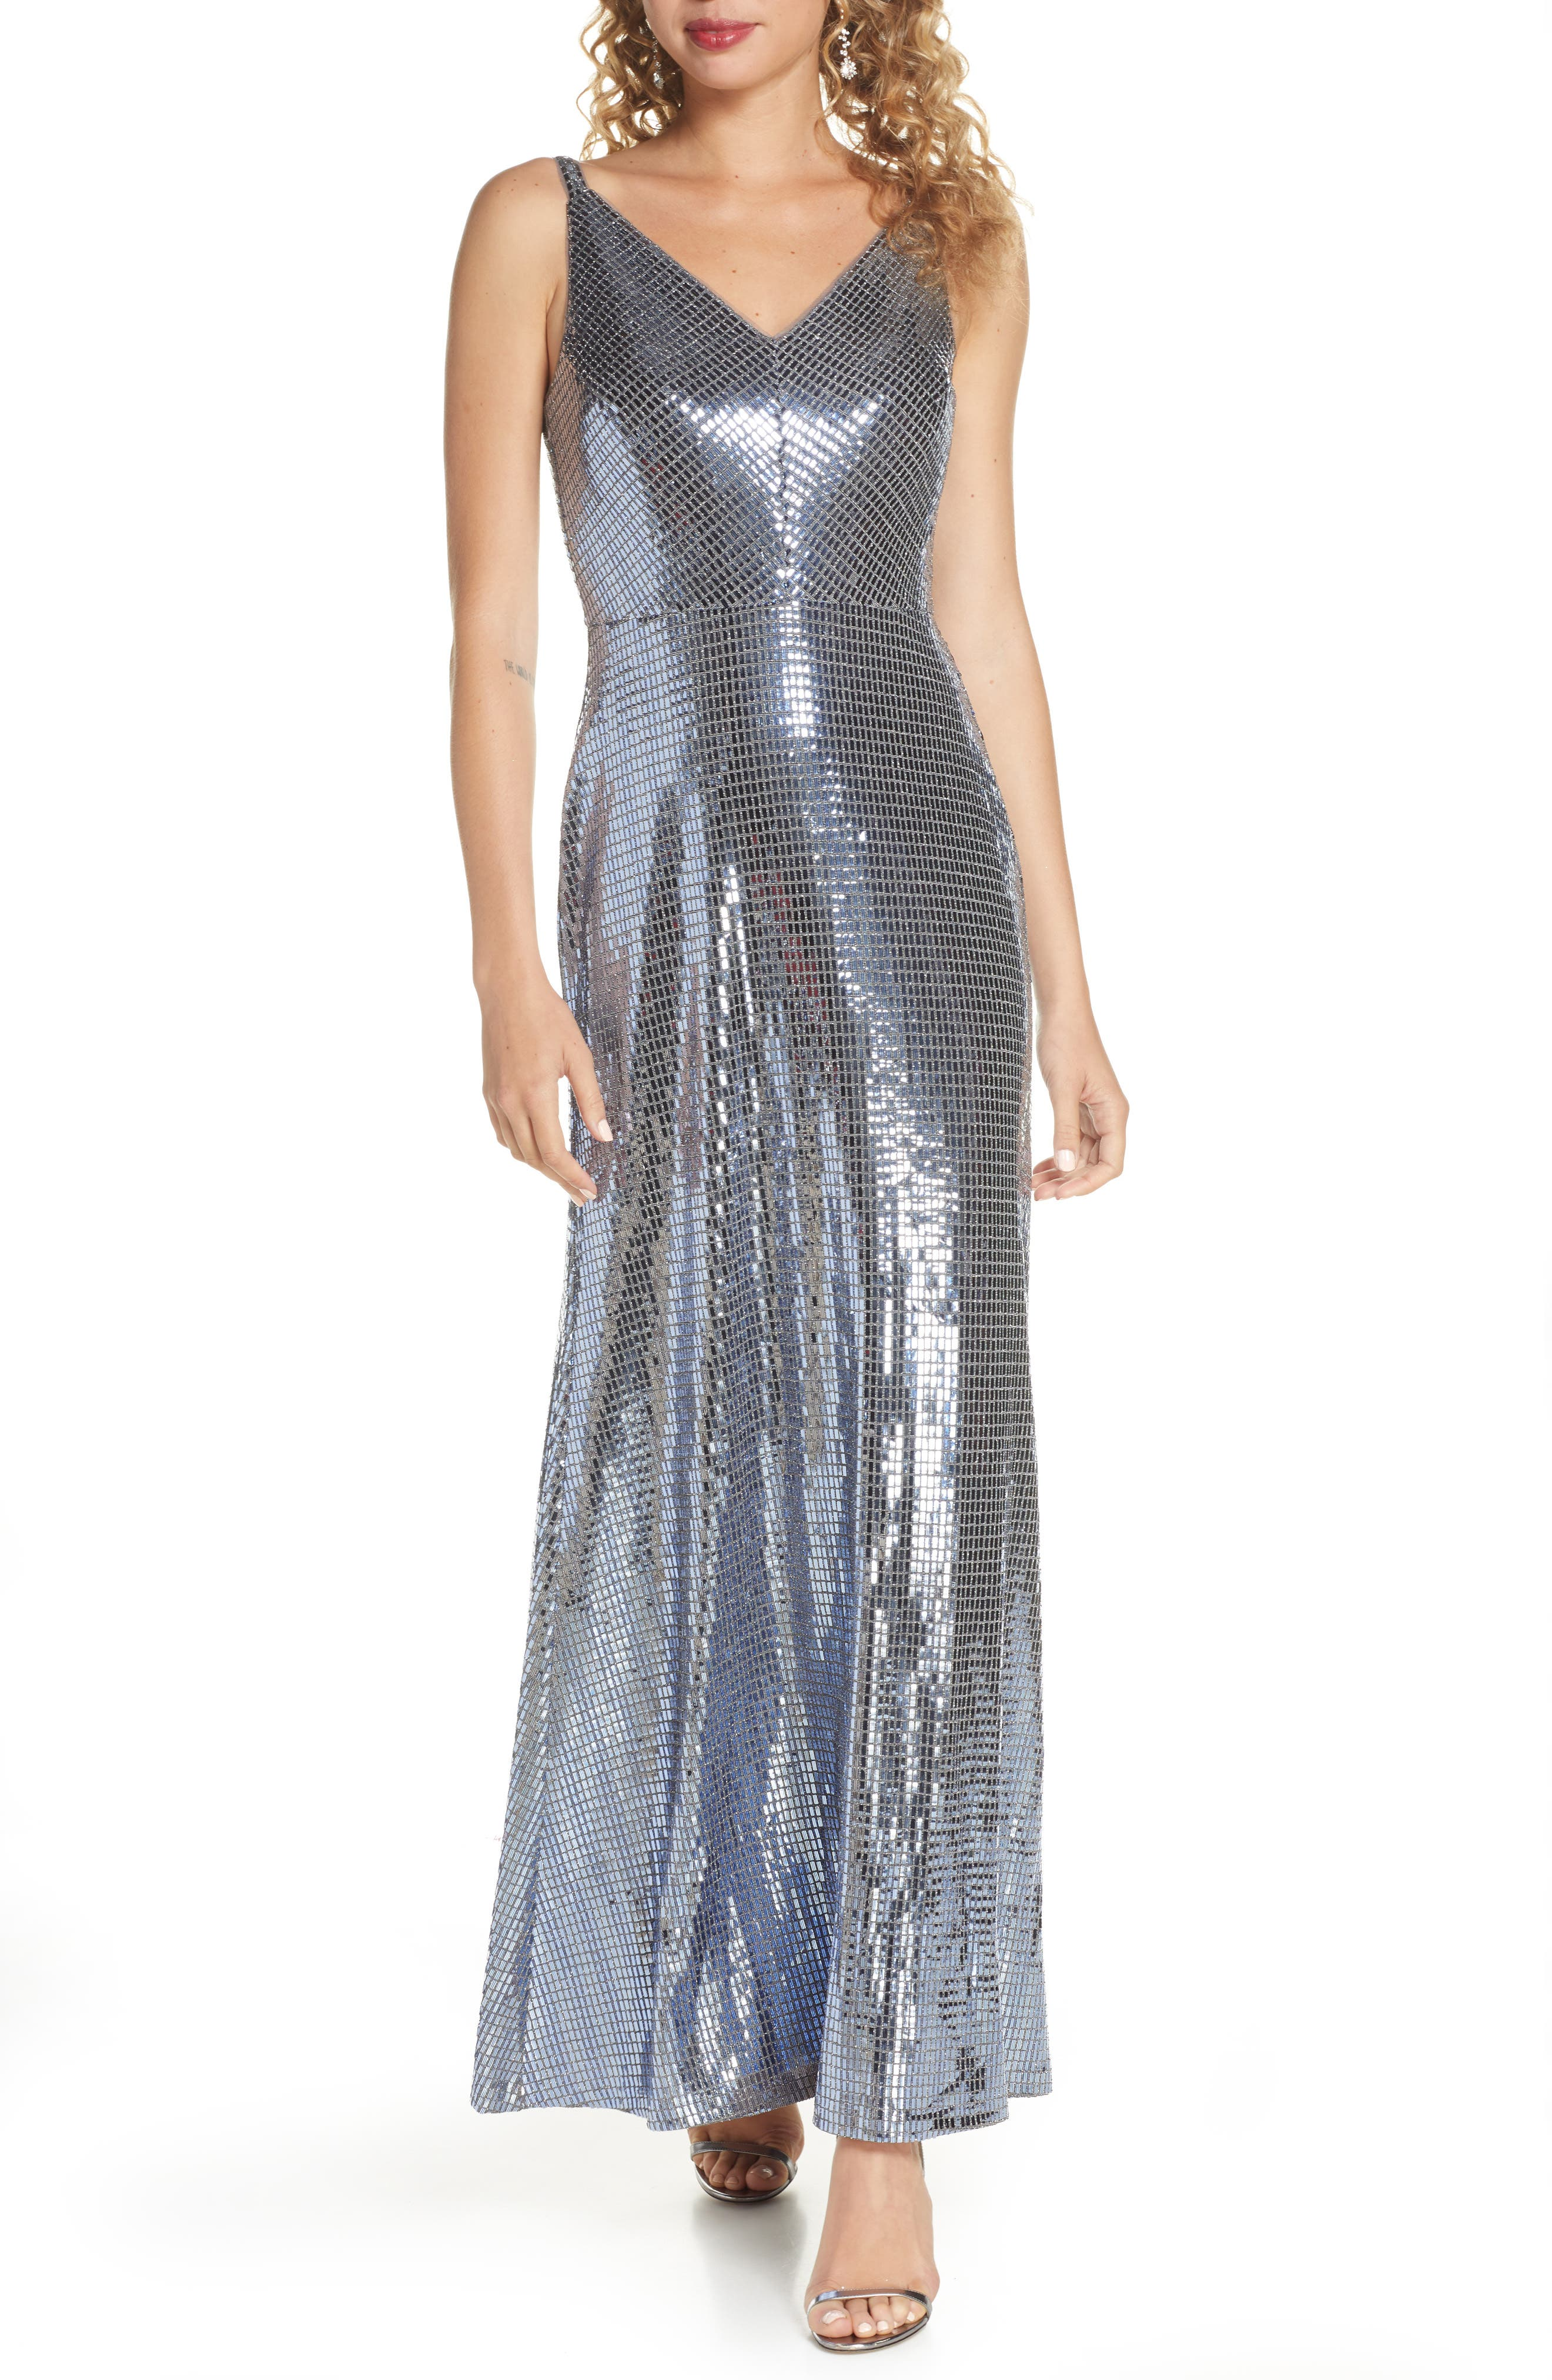 1930s Evening Dresses | Old Hollywood Dress Womens Morgan  Co. Mirror Sequin A-Line Gown Size 9 - Blue $139.00 AT vintagedancer.com